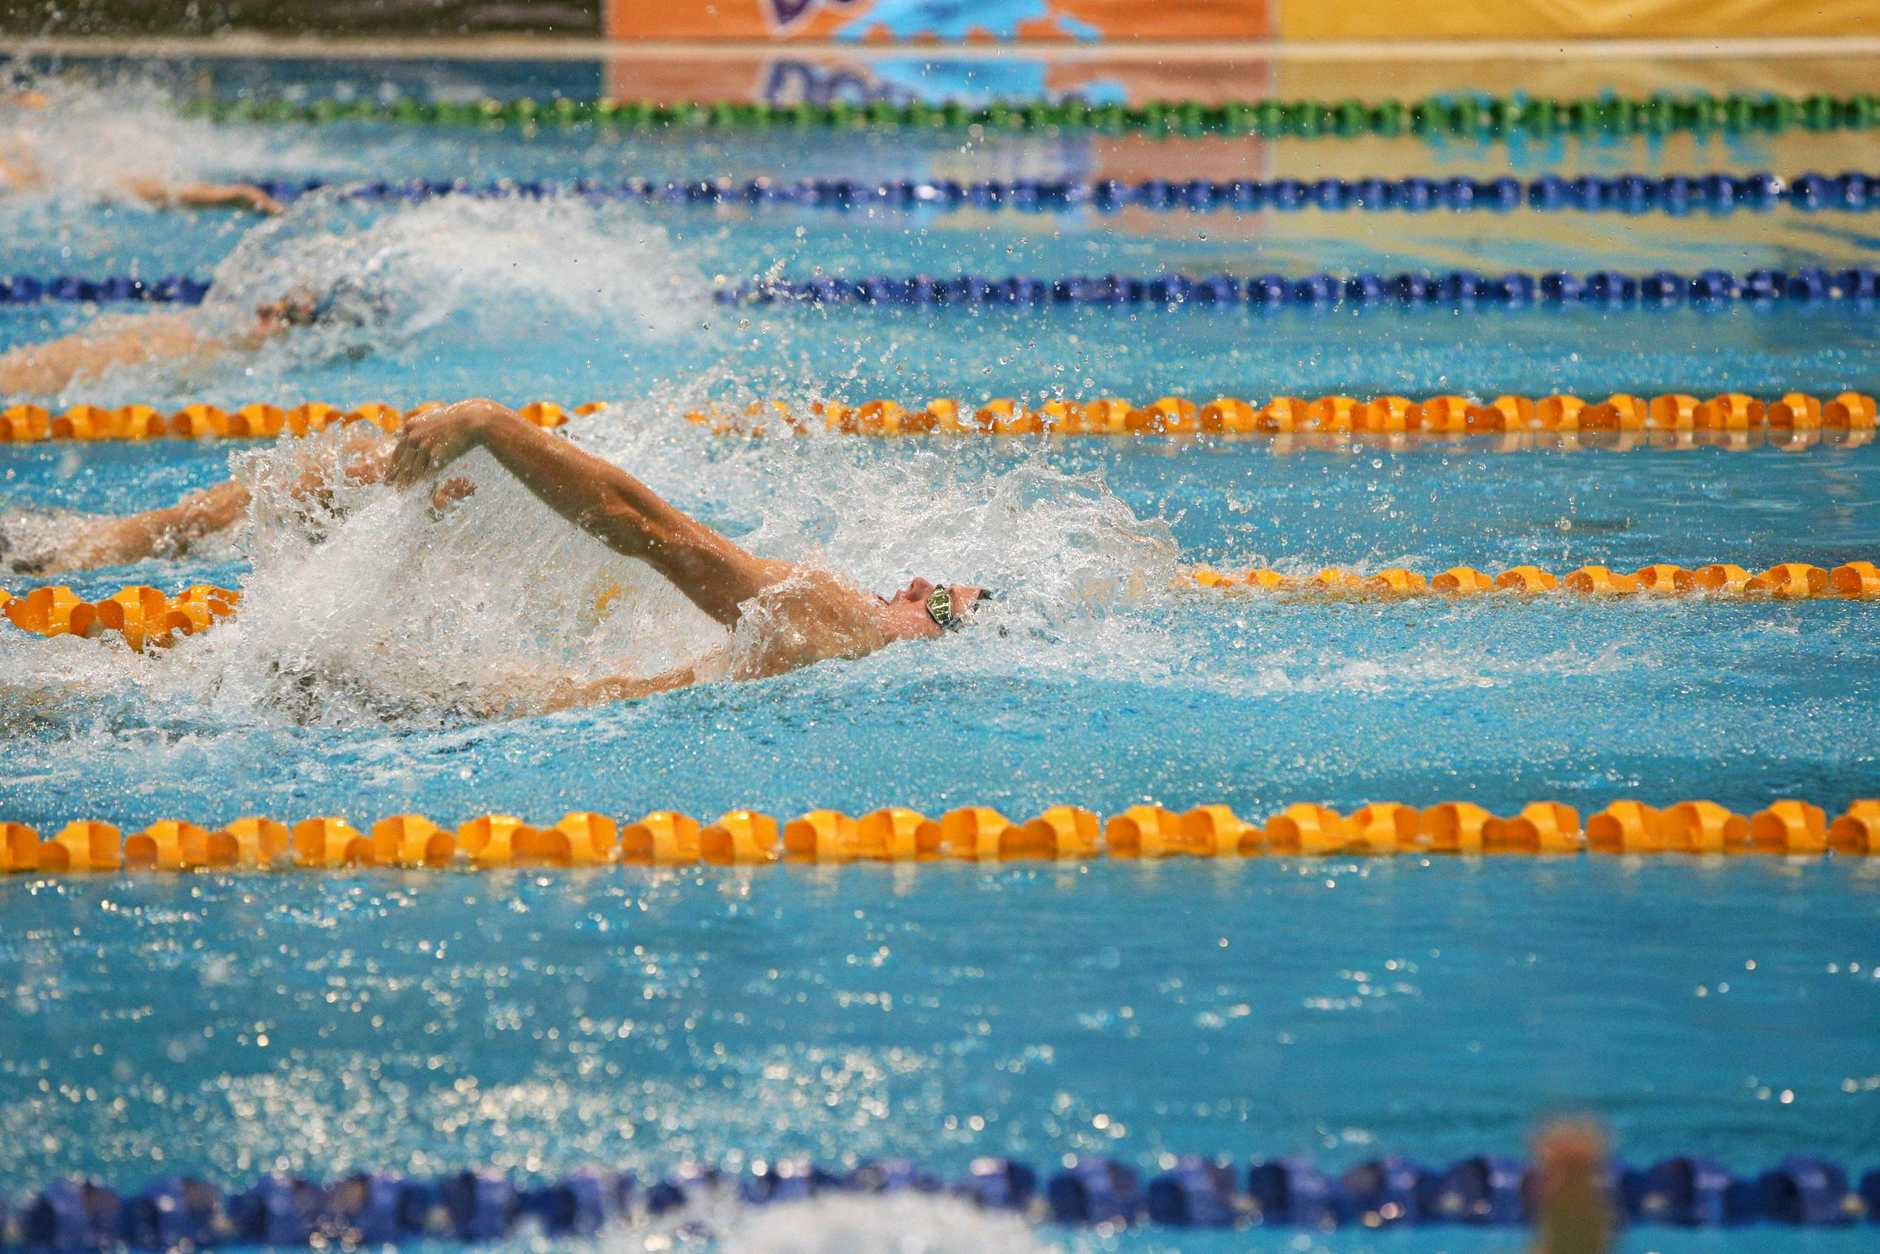 SWIM STAR: Ty Hartwell powers to victory in the 200m backstroke at the Georgina Hope Foundation Australian Age Championships in Sydney and (right) with his gold medal.